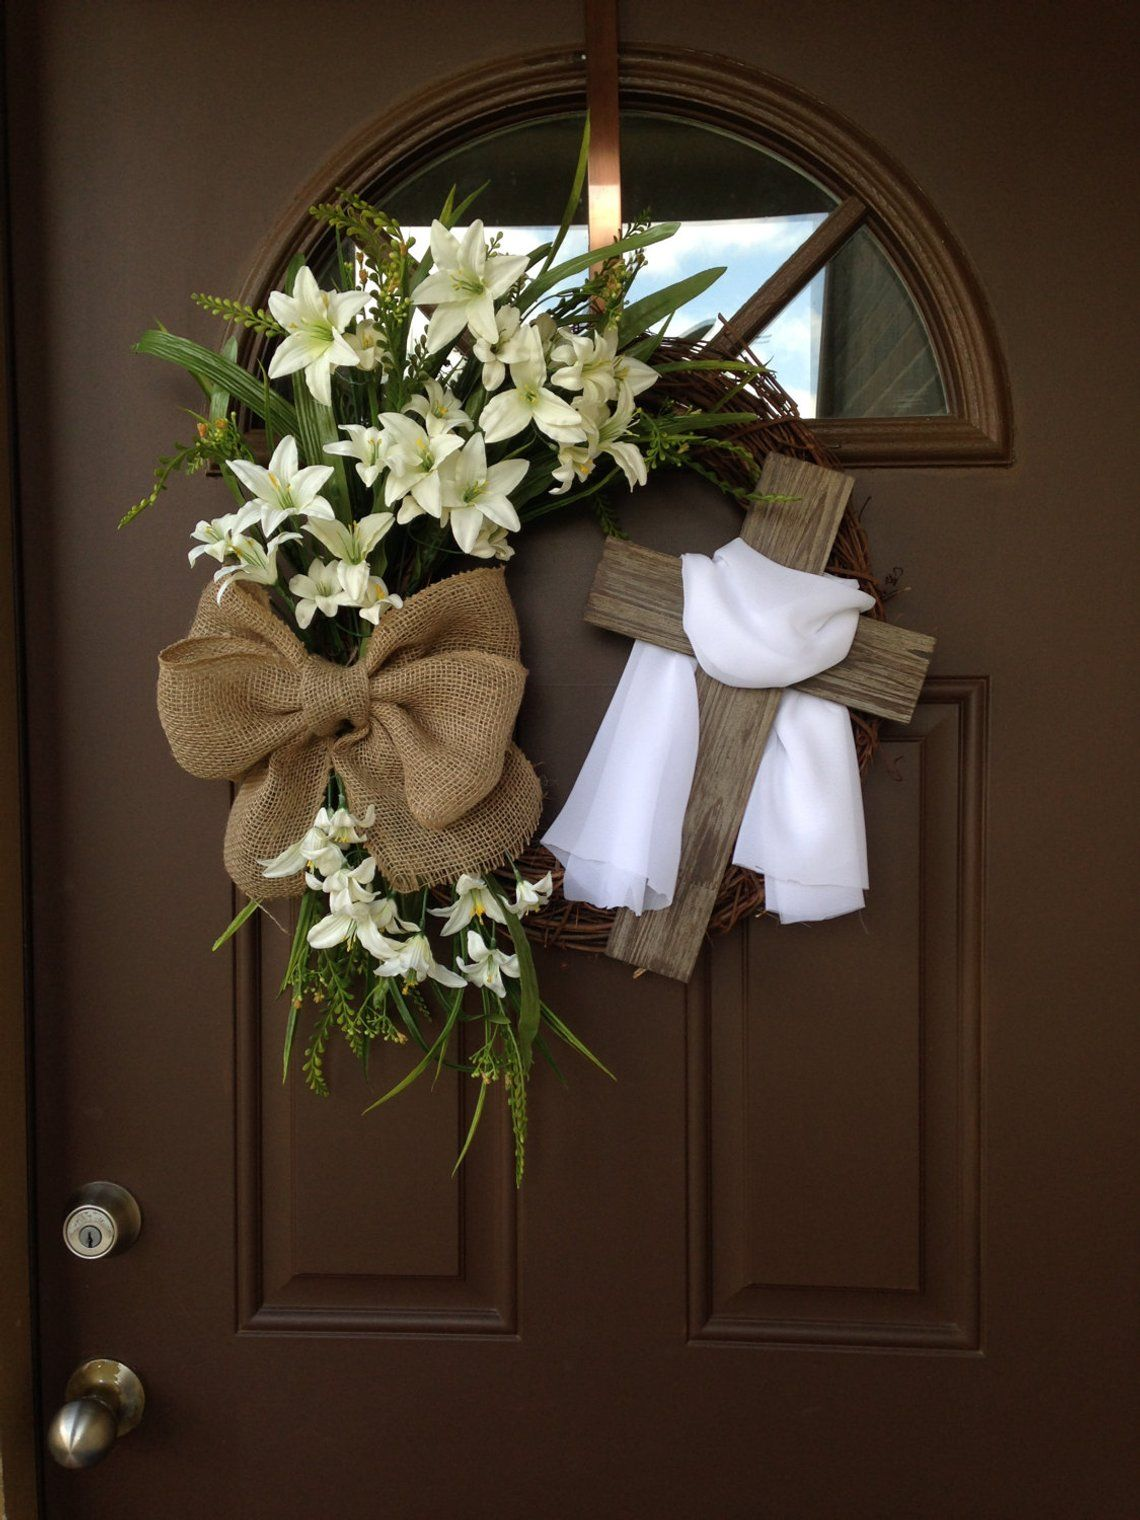 Easter Wreath With Cross Rustic Grapevine Easter Wreath With Burlap Bow Easter Decorations Easter Decor Easter Front Door Wreath Easter Front Door Easter Grapevine Wreath